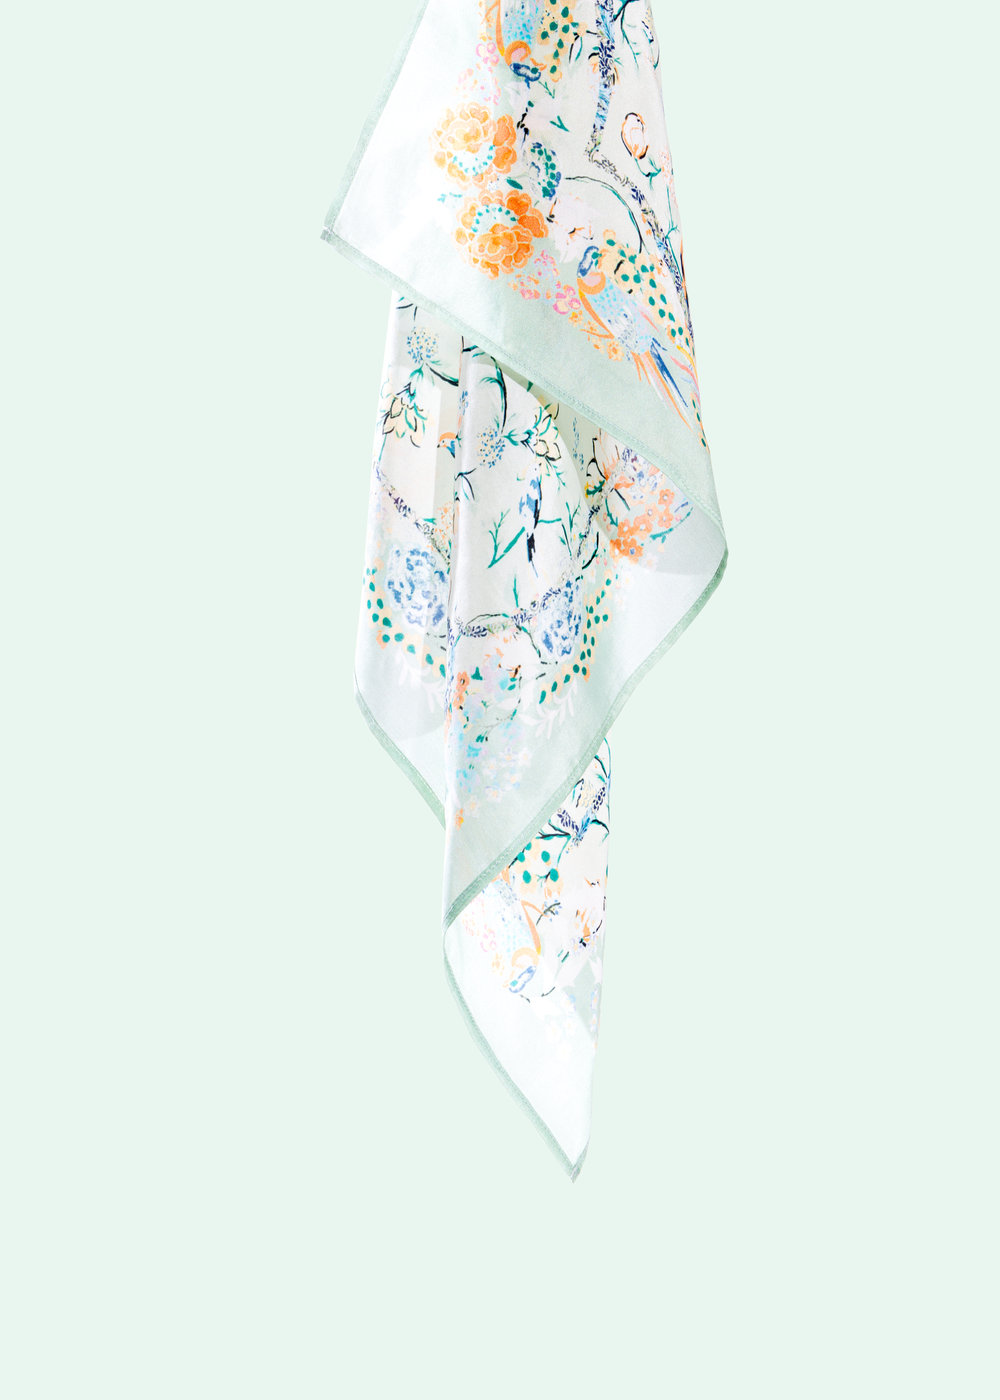 Silk Scarves0086-Edit-2Copy.jpg